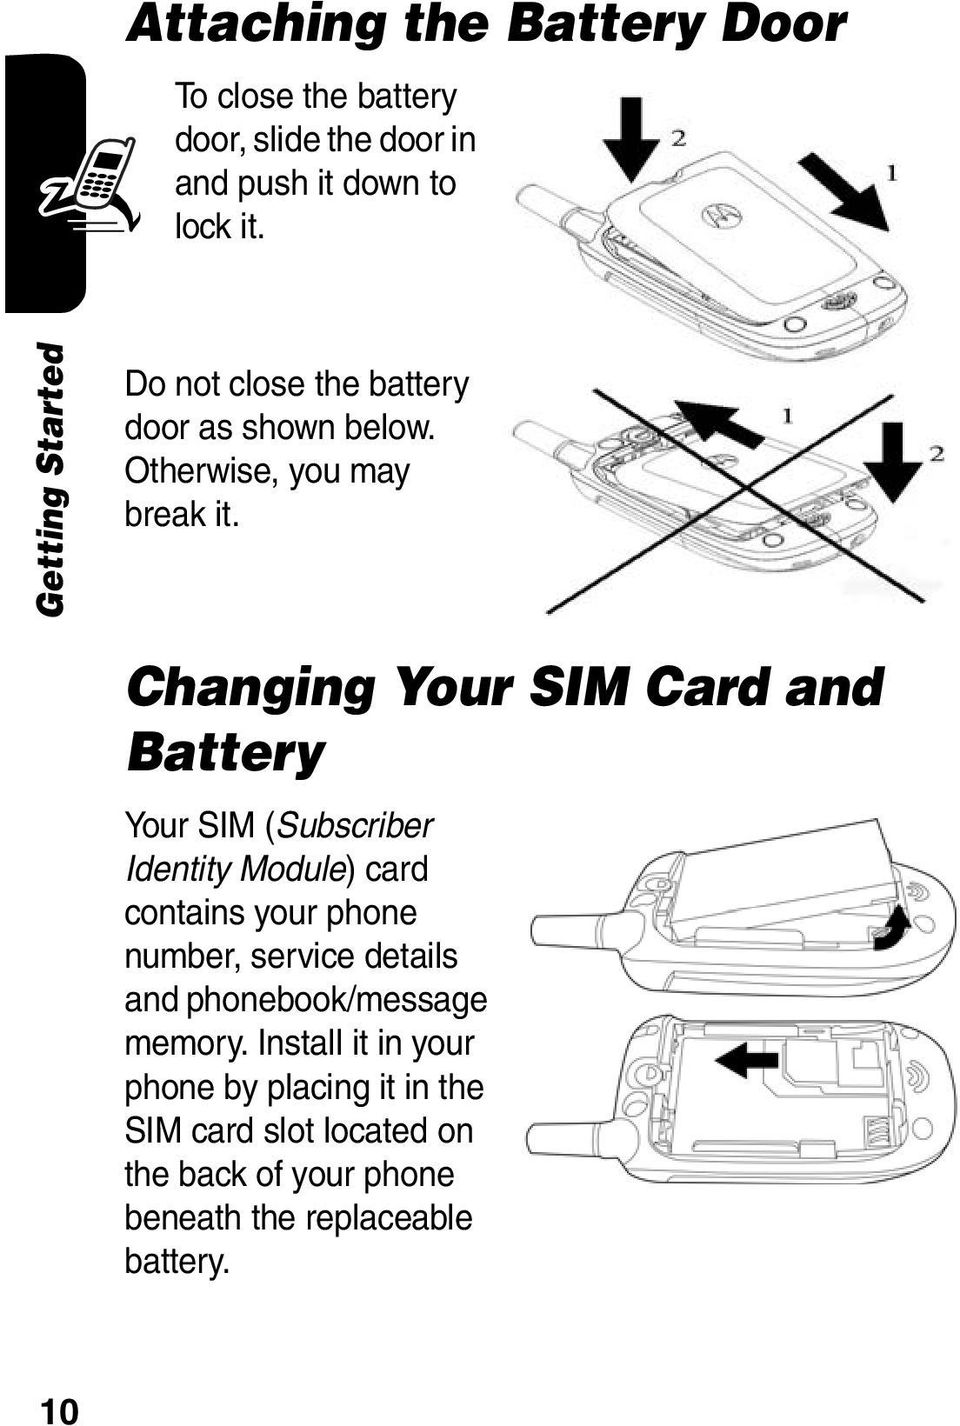 Changing Your SIM Card and Battery Your SIM (Subscriber Identity Module) card contains your phone number, service